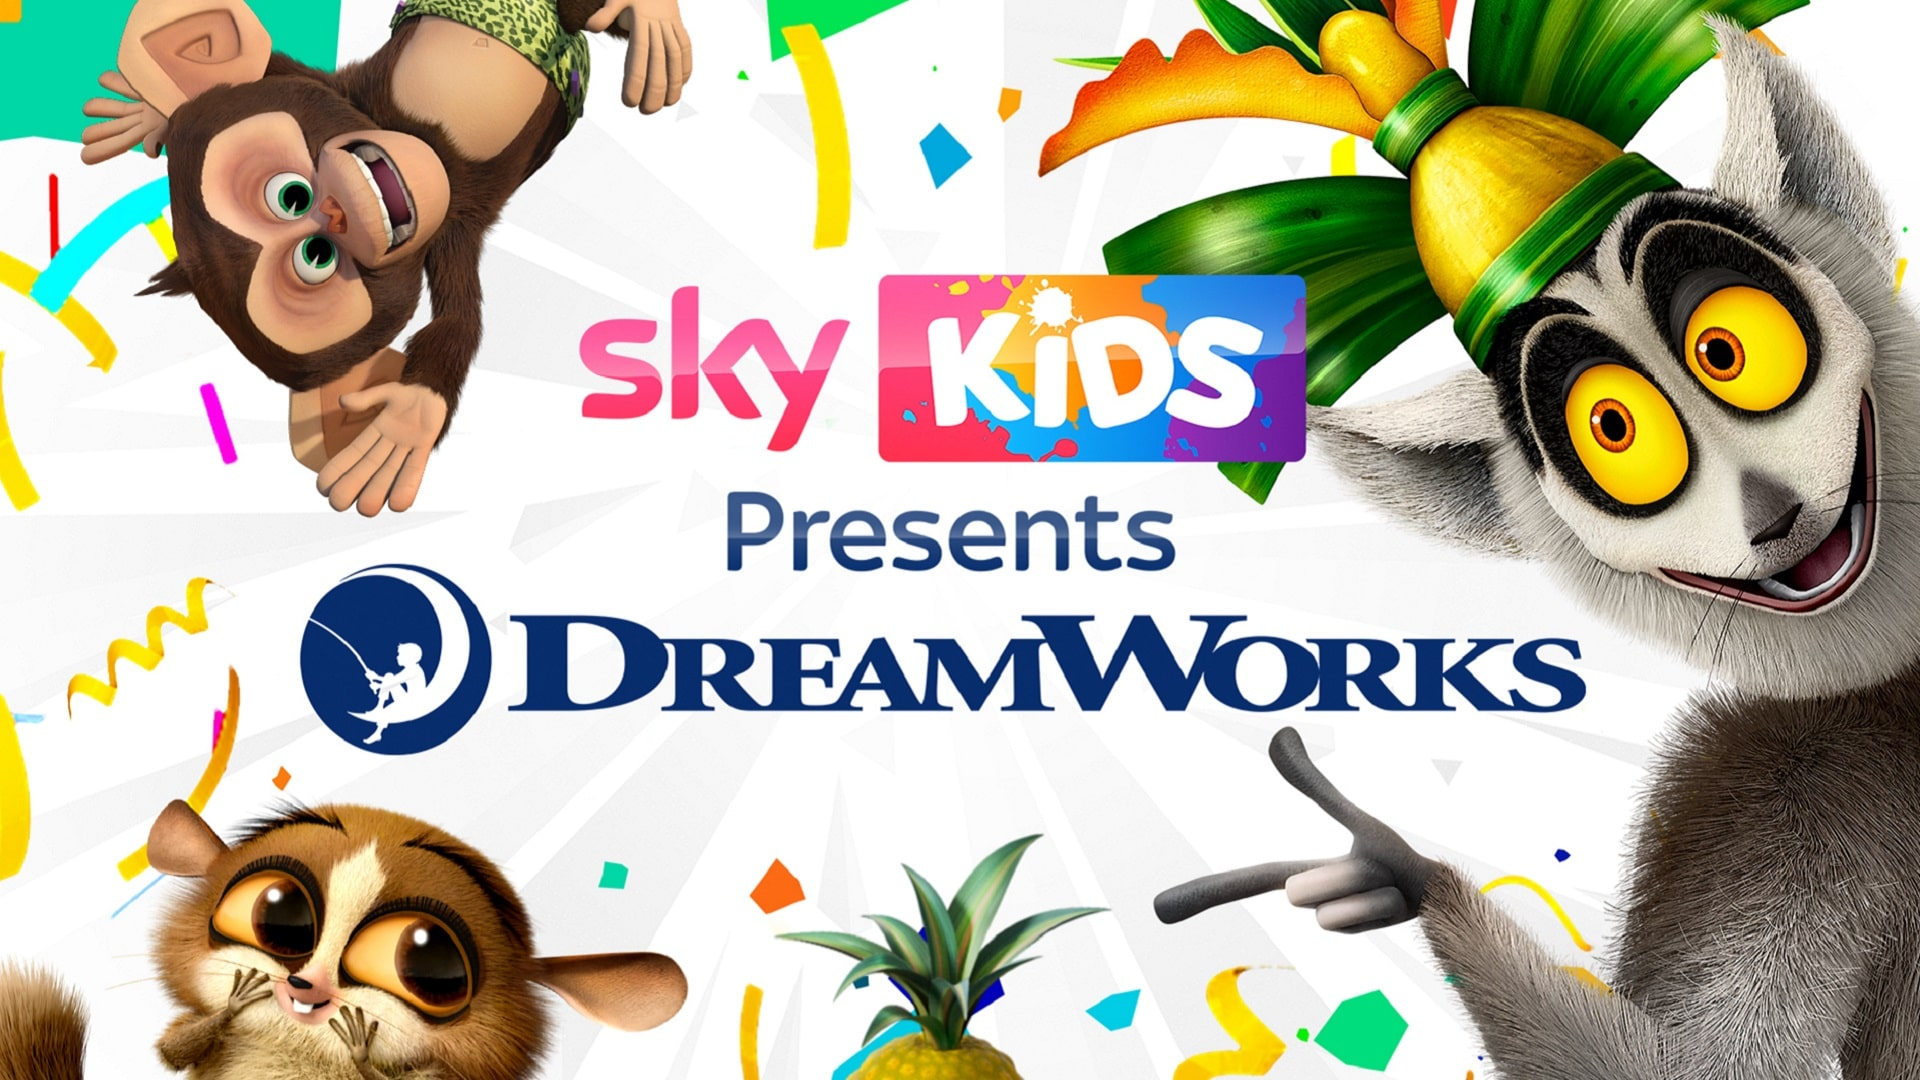 Sky announce new partnership with Dreamworks